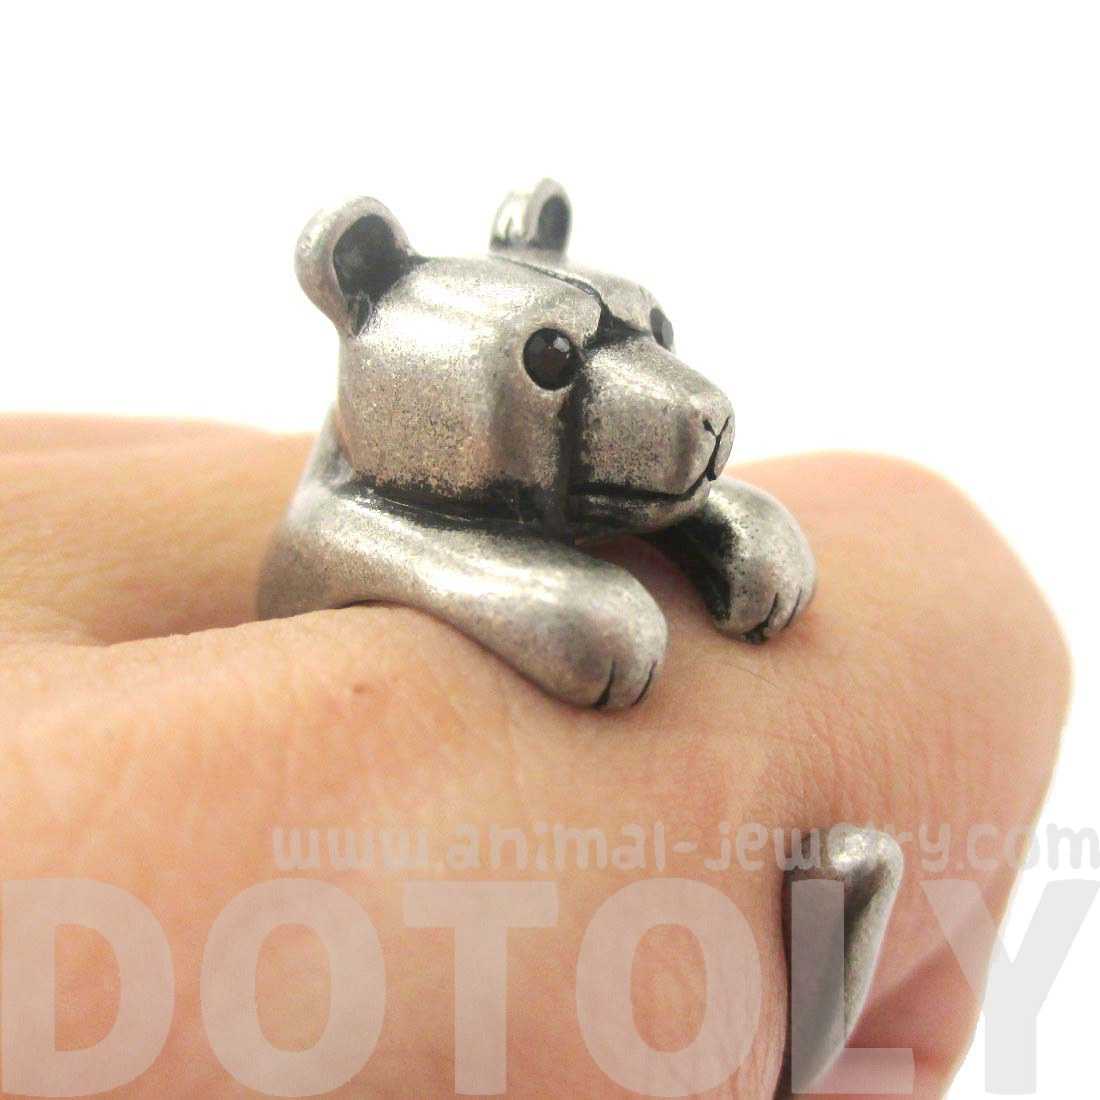 Bear In Hing Reng 2: Animal Wrap Rings Fake Gauge Earrings